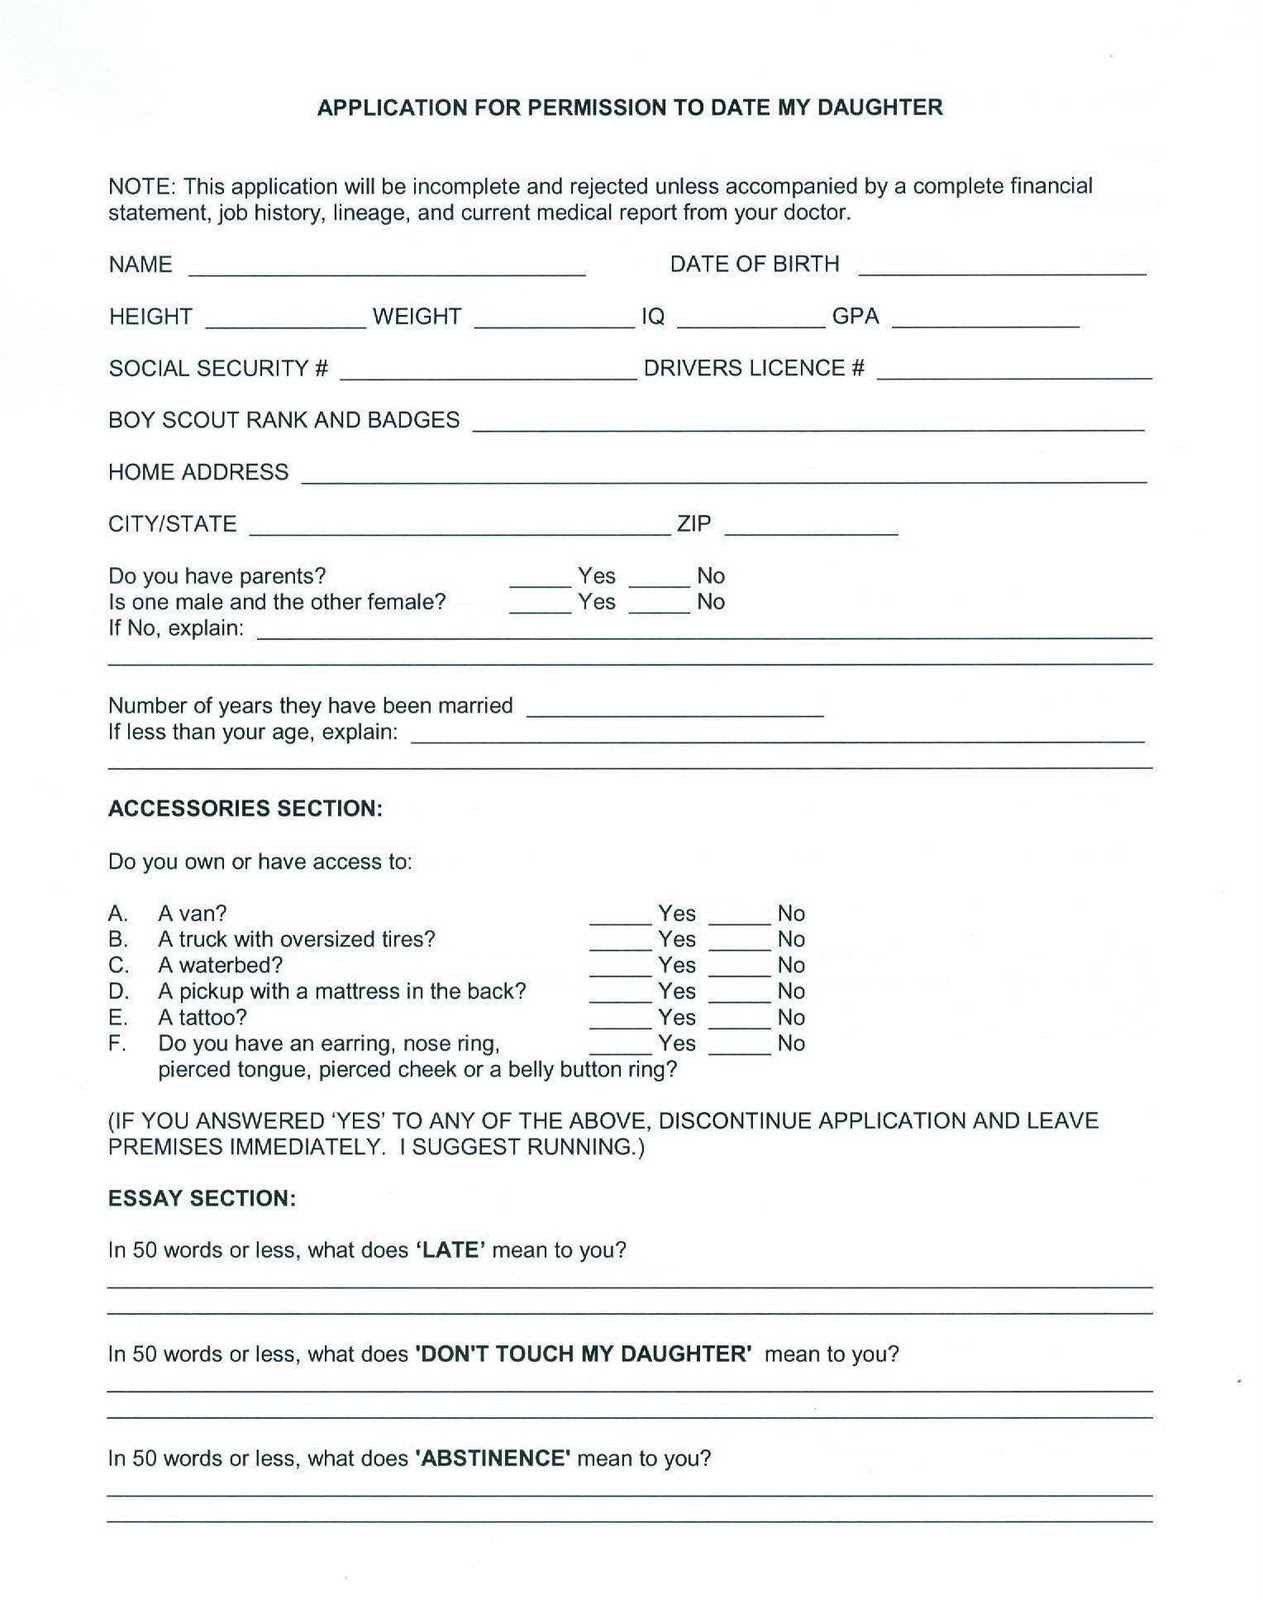 Daughter dating form